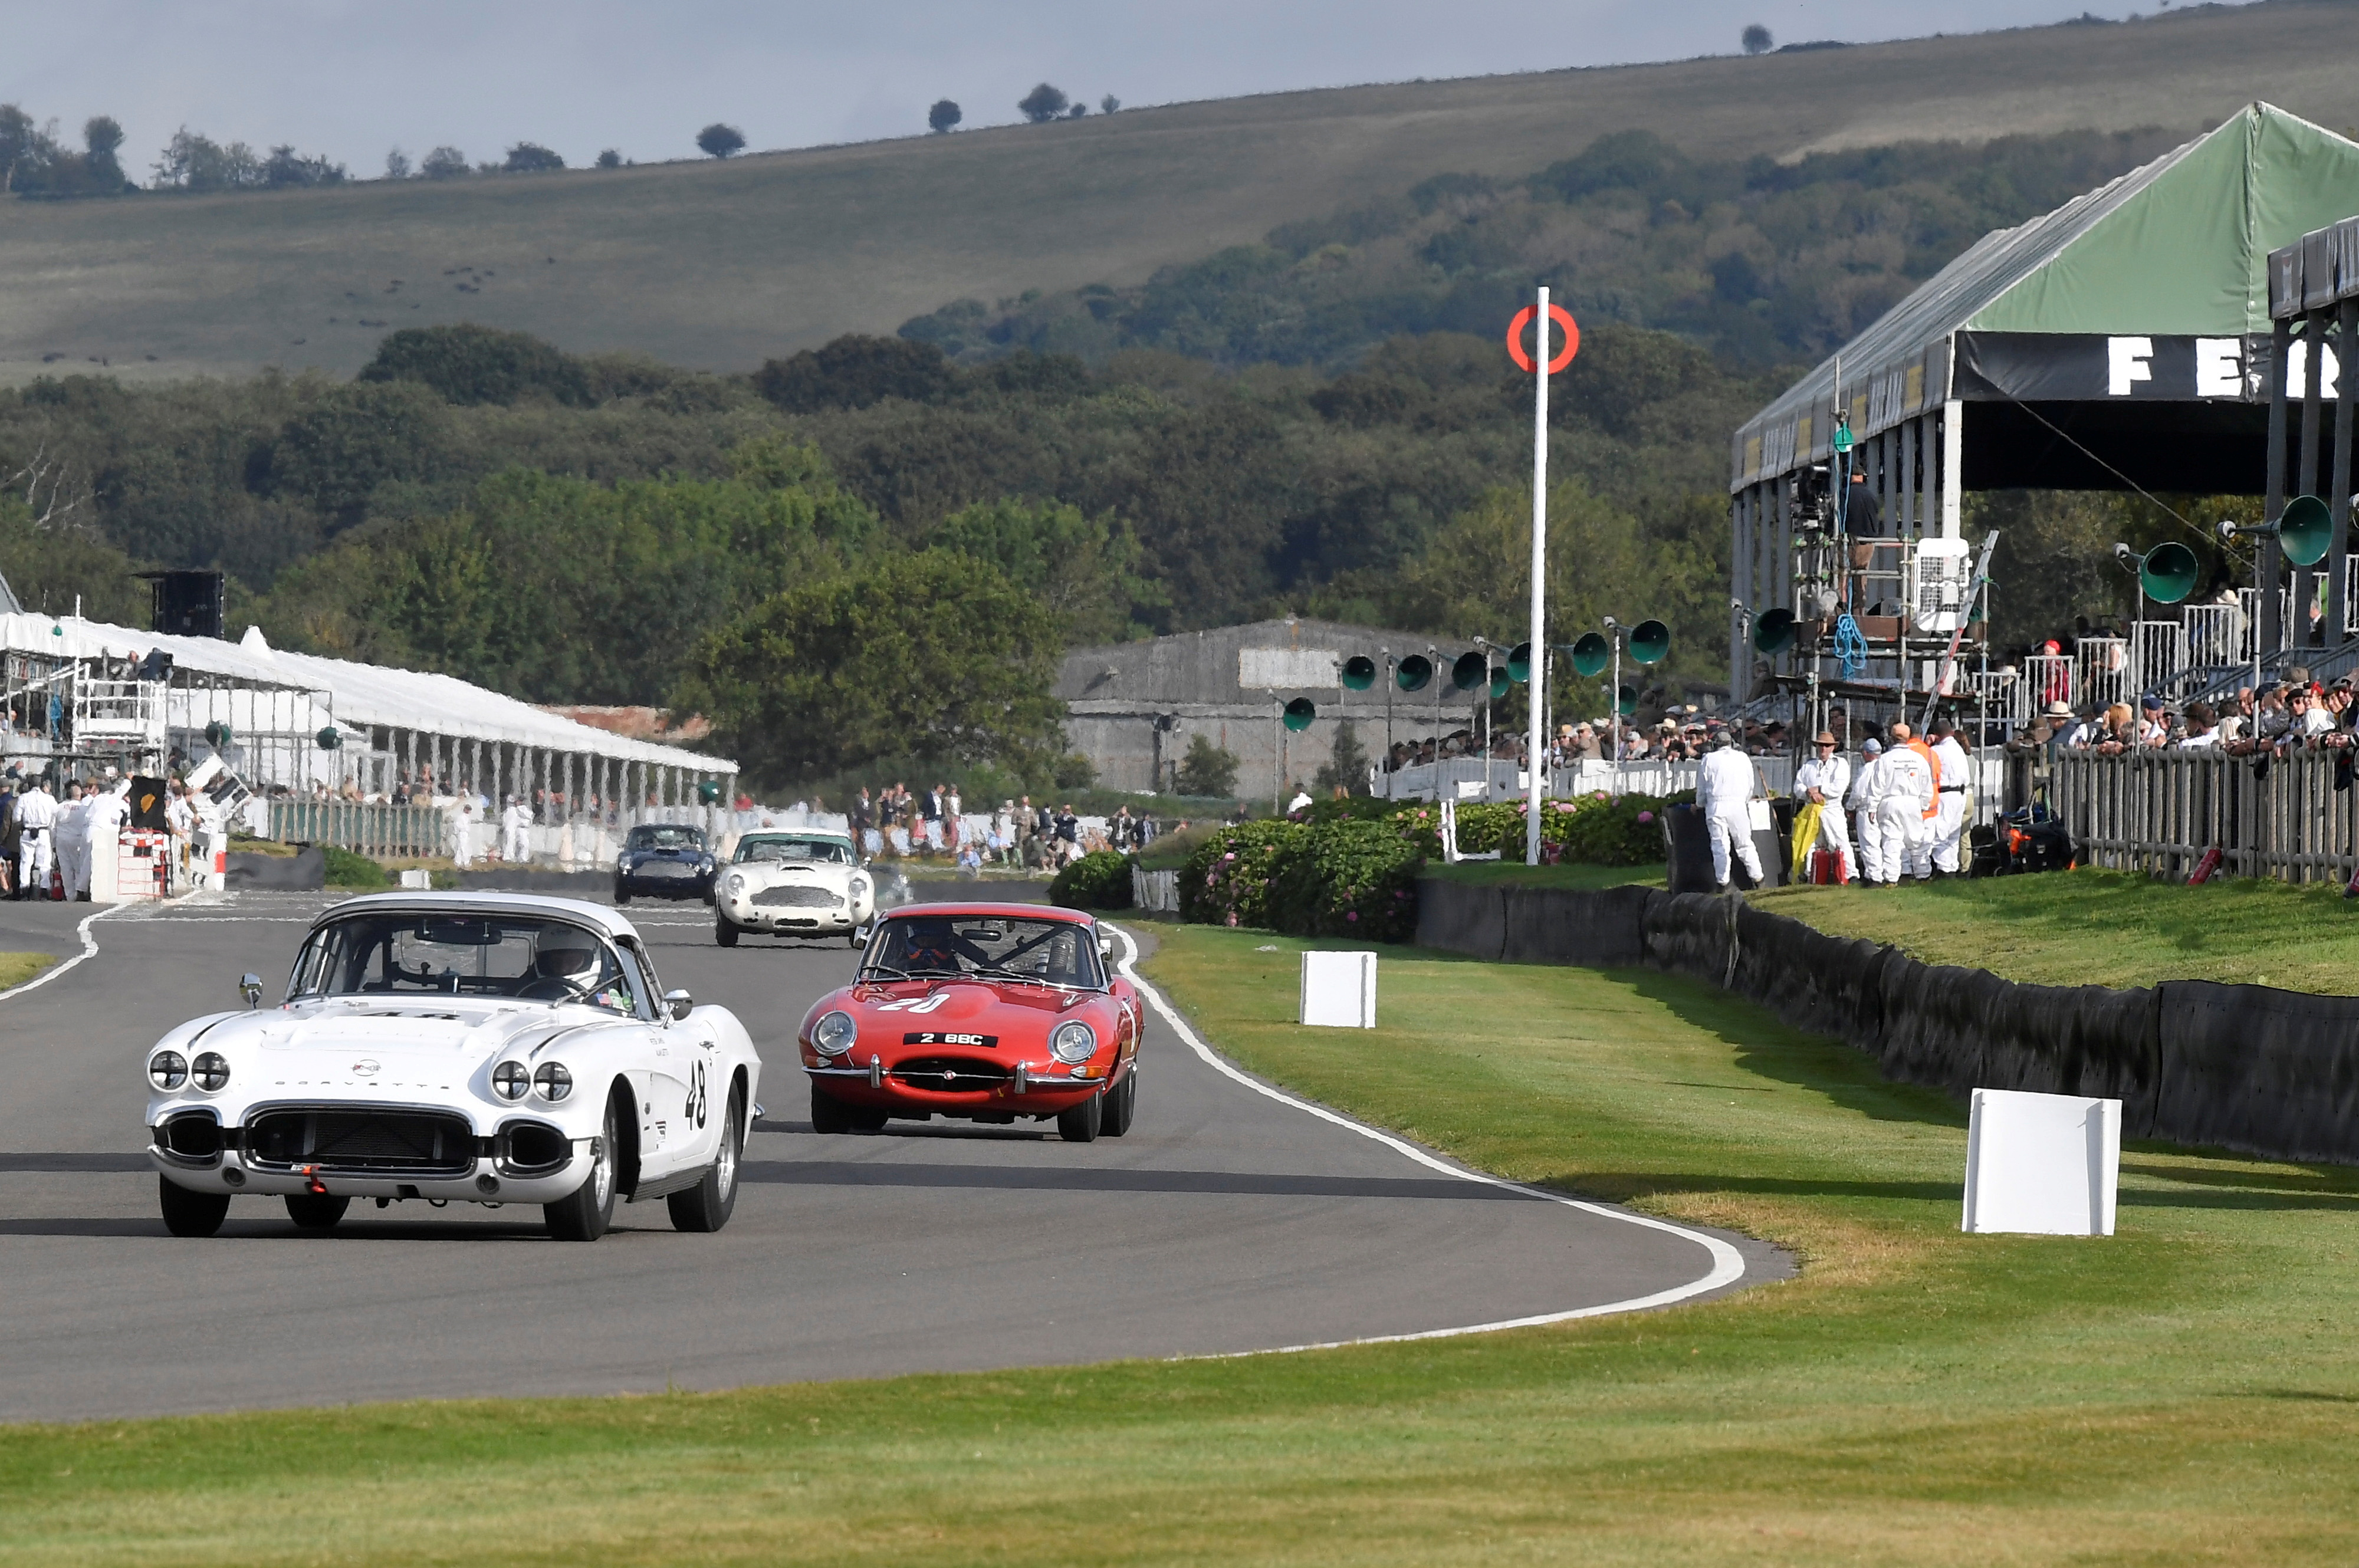 Motoring enthusiasts attend the Goodwood Revival, a three-day historic car racing festival in Goodwood, Chichester, southern Britain, September 17, 2021. REUTERS/Toby Melville/File Photo